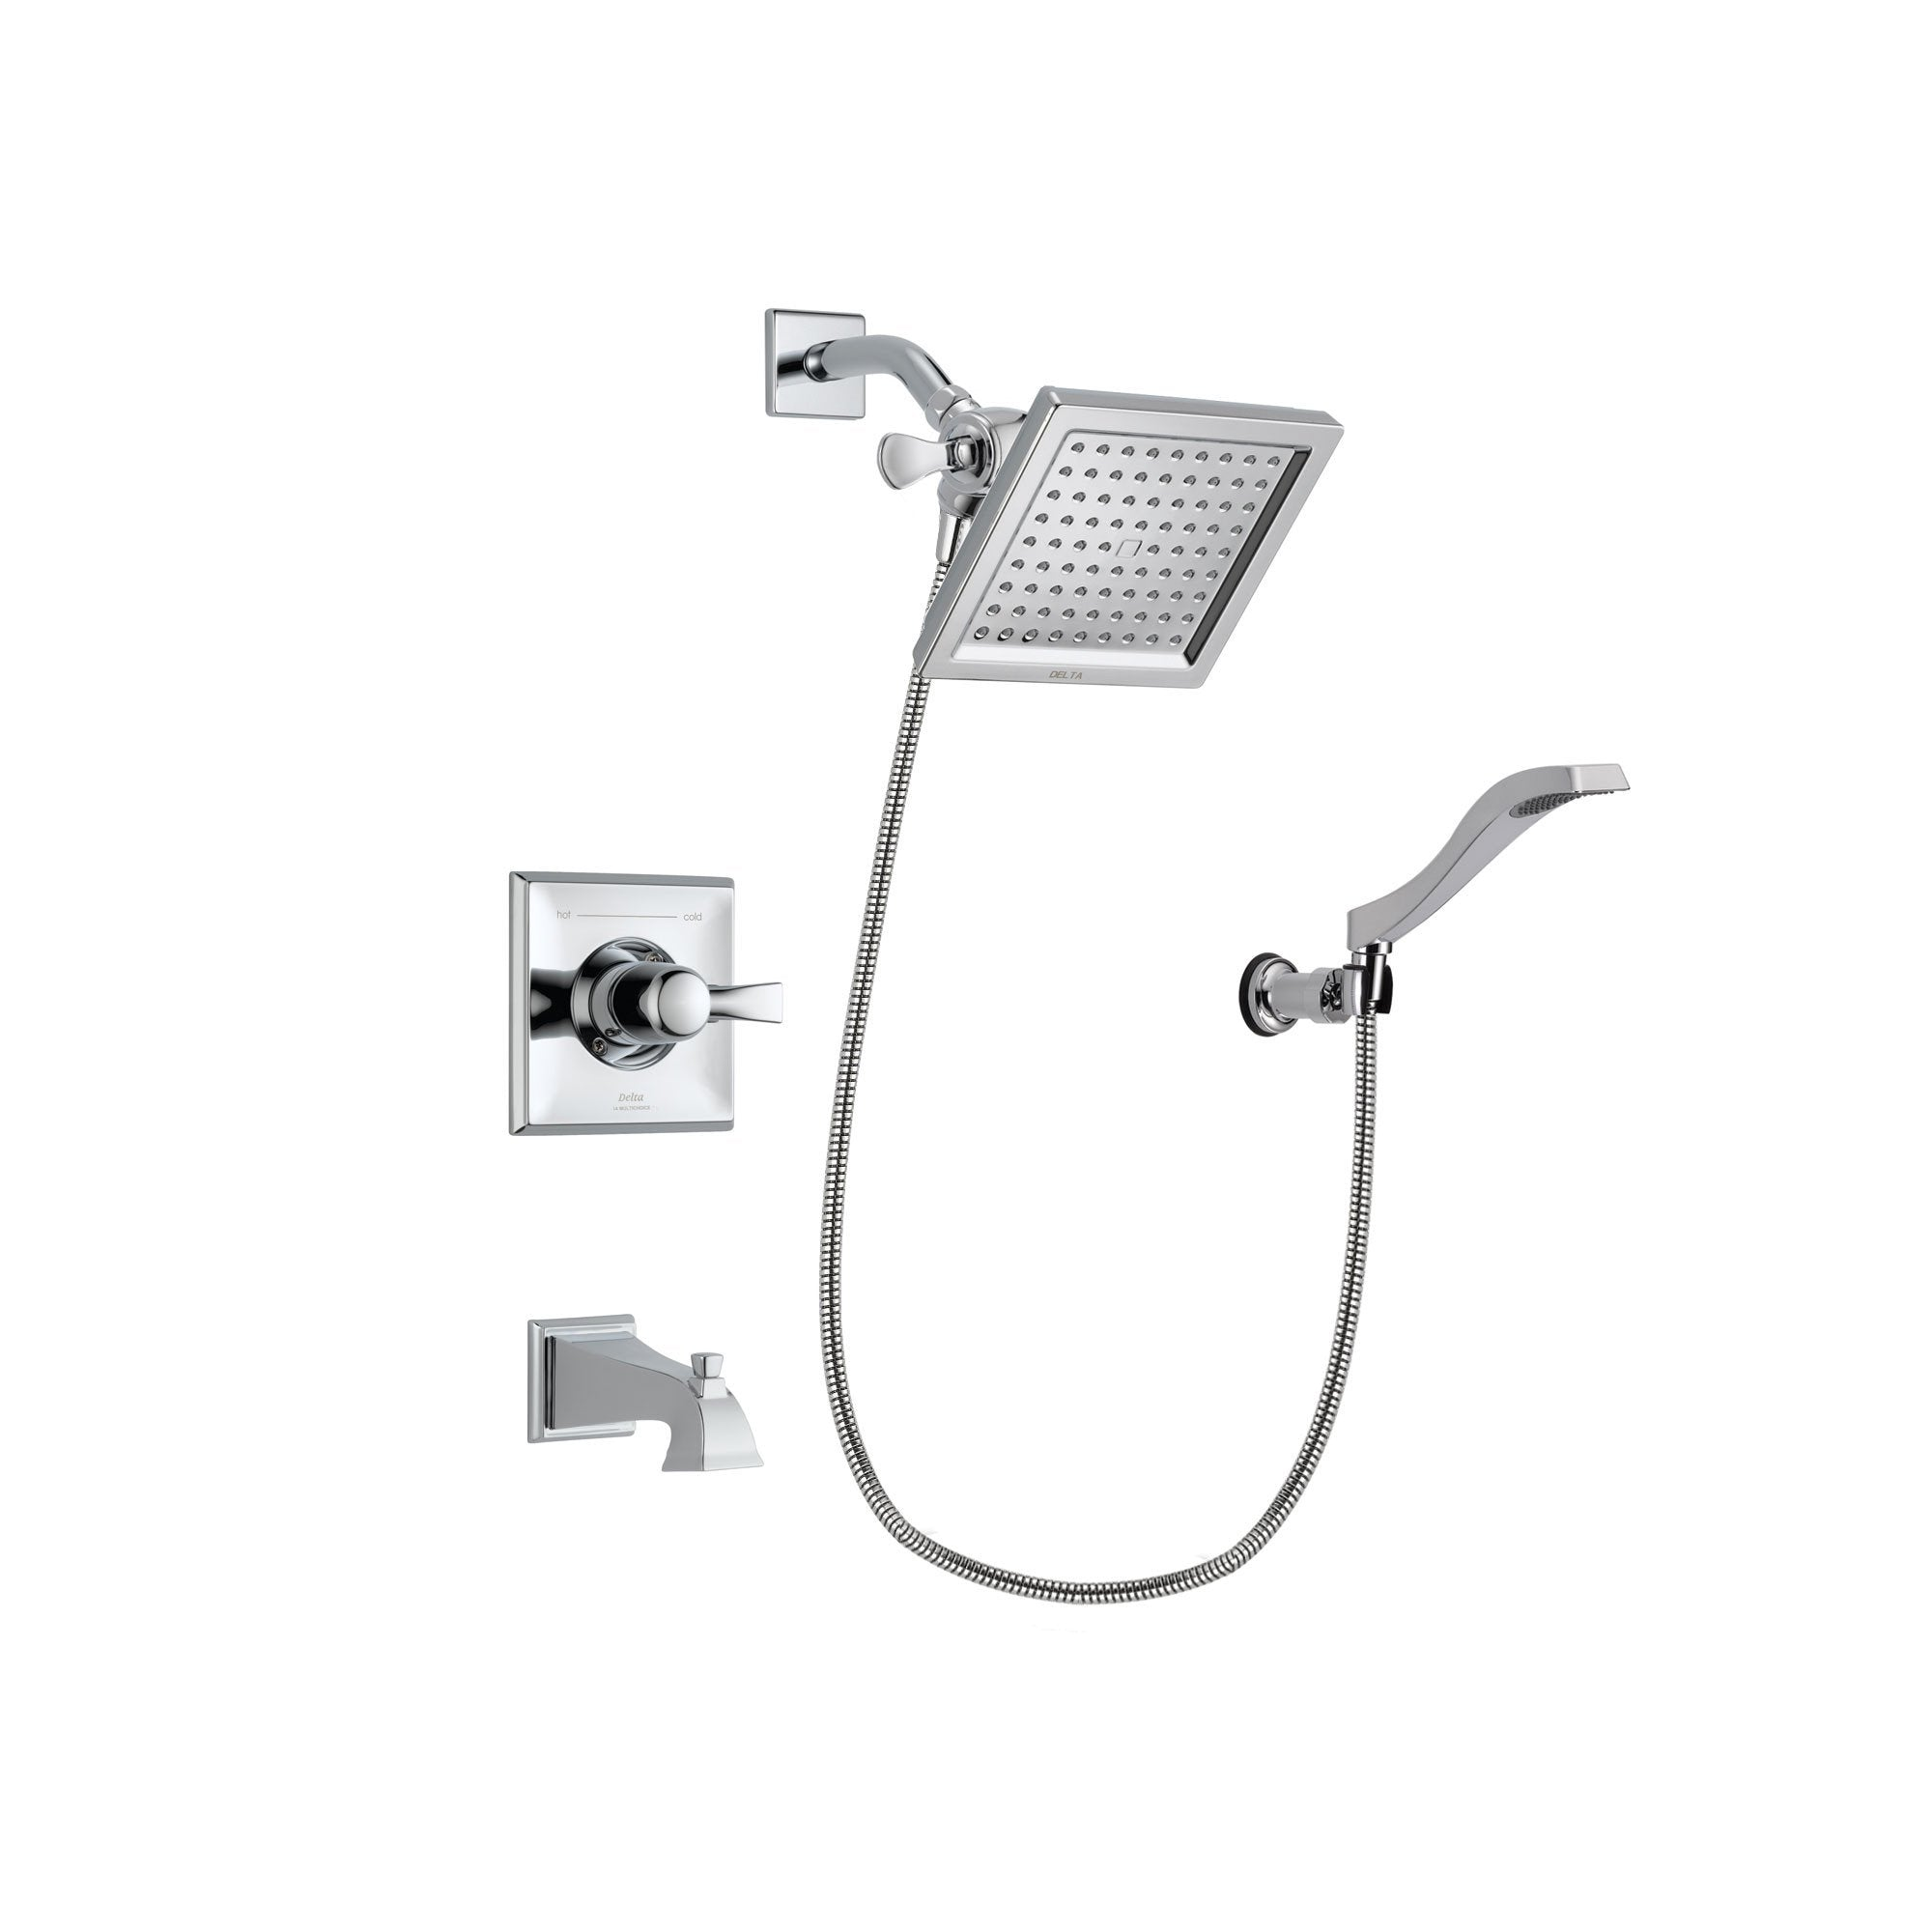 Delta Dryden Chrome Tub and Shower Faucet System Package w/ Hand Shower DSP0023V